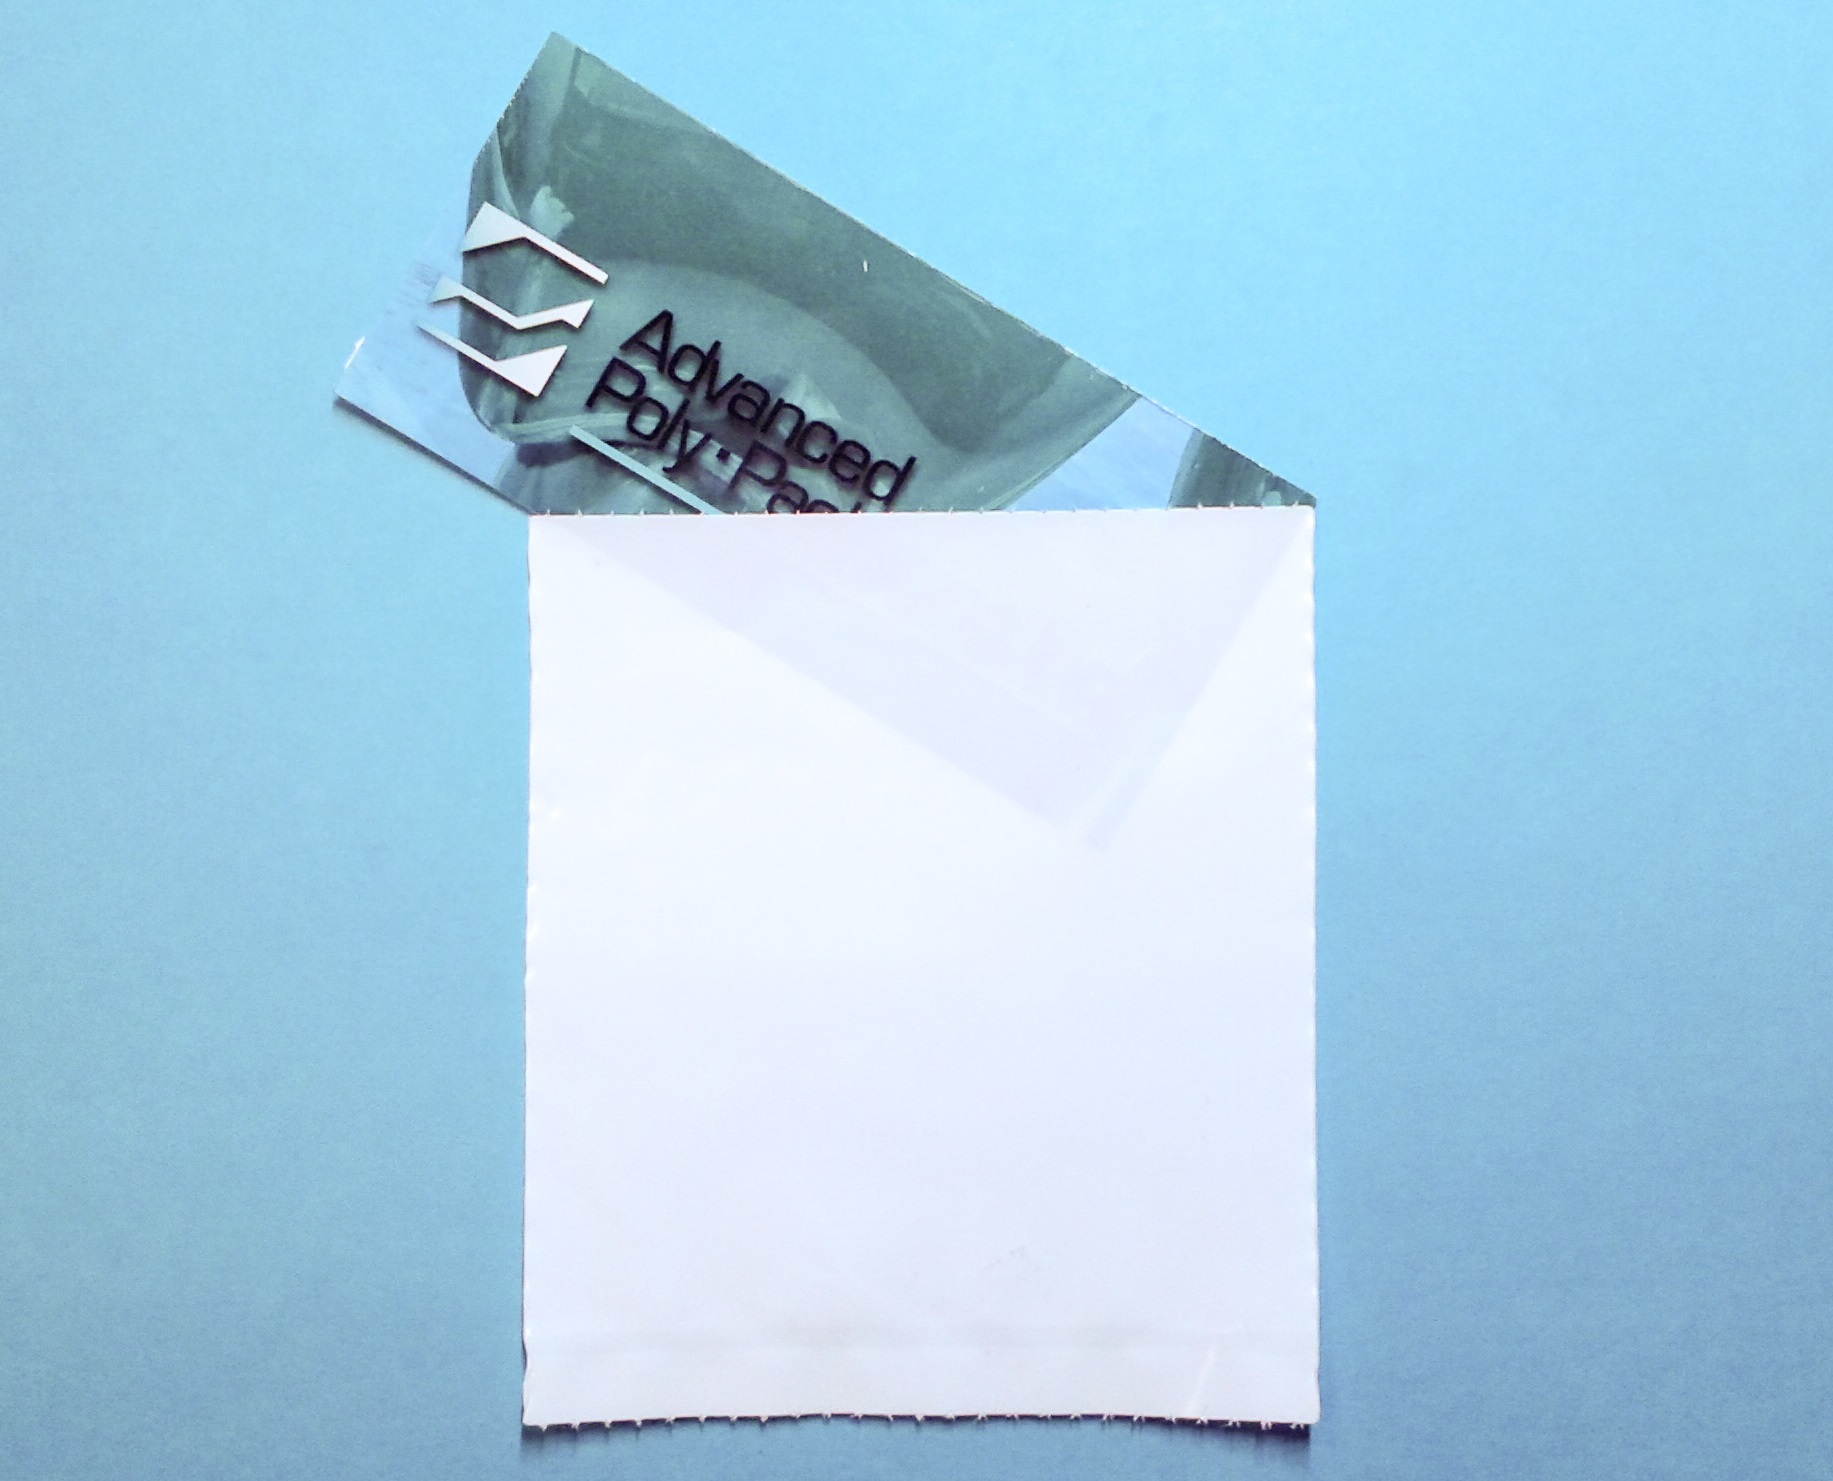 8.5 x 10.5 x 3 mil,  Nonprinted, Comb. (DSWS):  Front - White Opaque LLDPE, Back - Clear LLDPE. Bag Type: Pre-opened Bags on Rolls